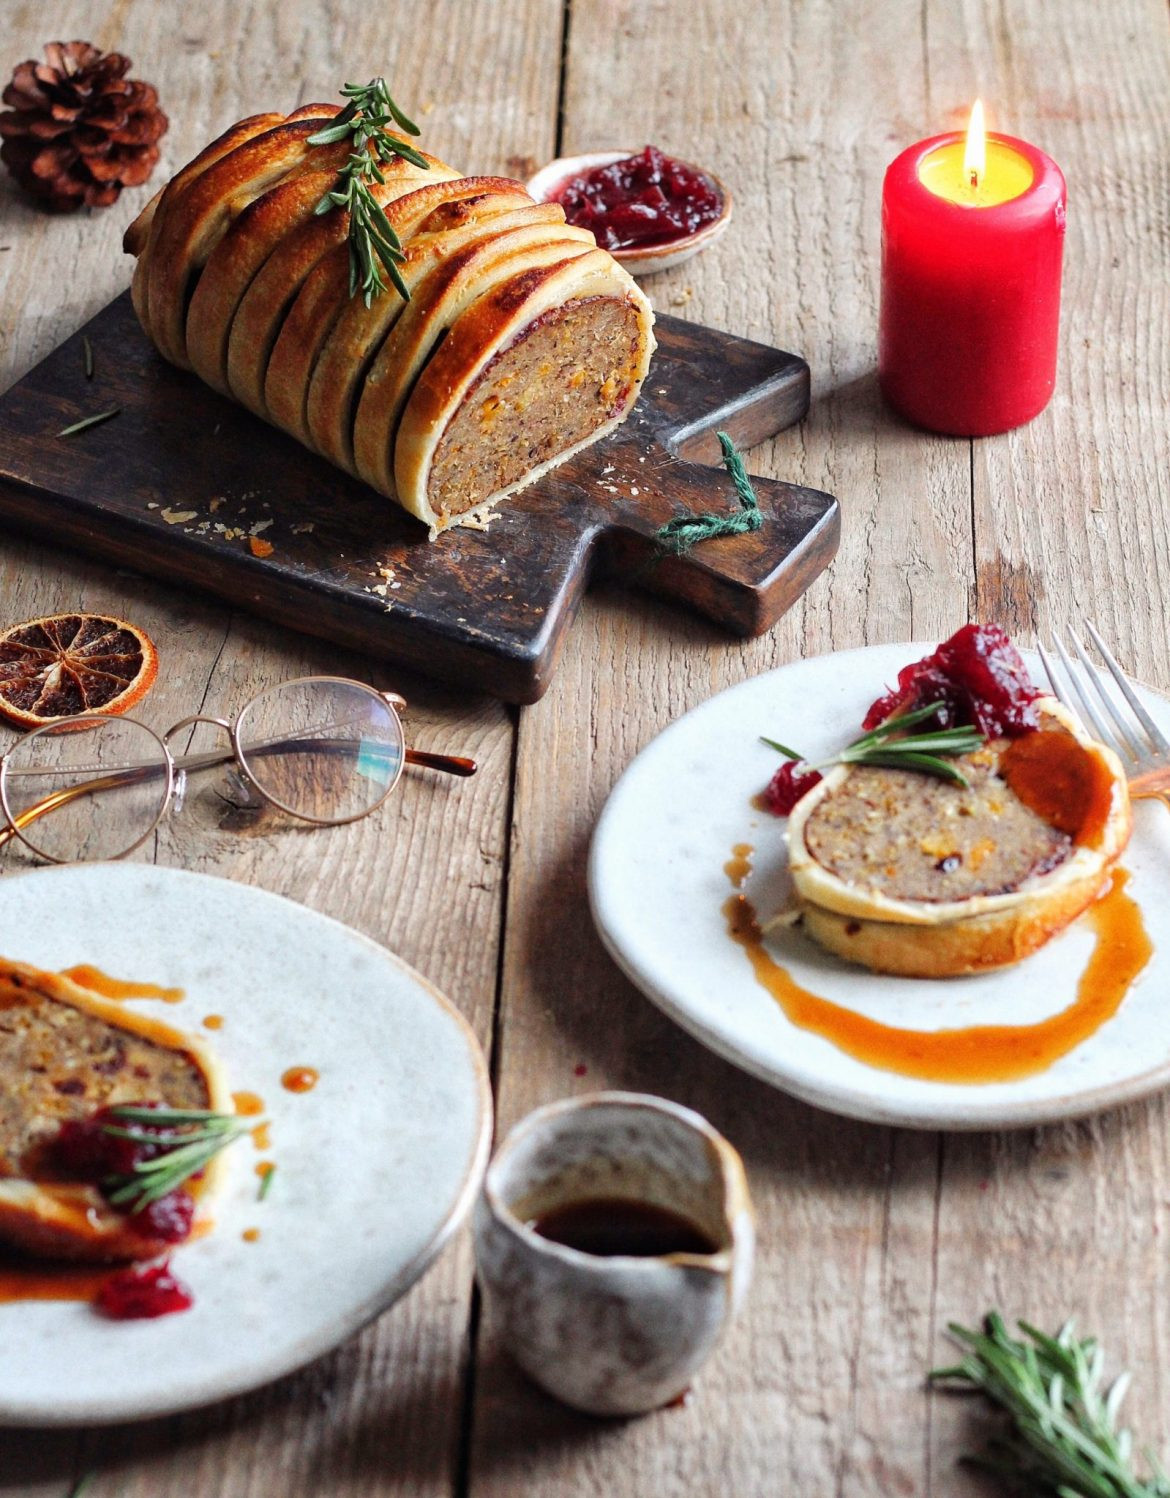 Holiday Vegetarian Main Dishes  22 Delicious Vegan Festive Holiday Side & Main Dishes My